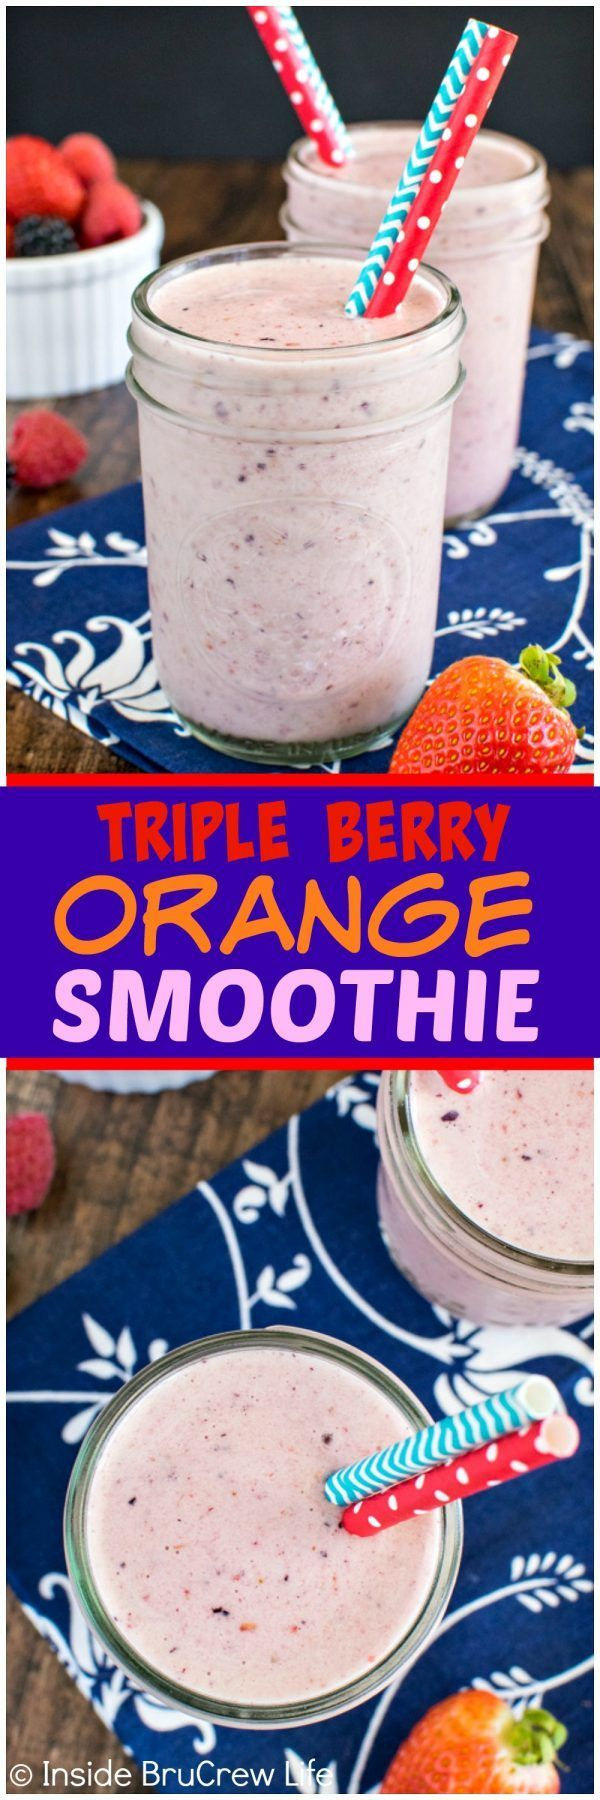 Triple Berry Orange Smoothie - three kinds of fruit, yogurt, and protein make this smoothie a healthy choice. Great for breakfast or an afternoon snack!